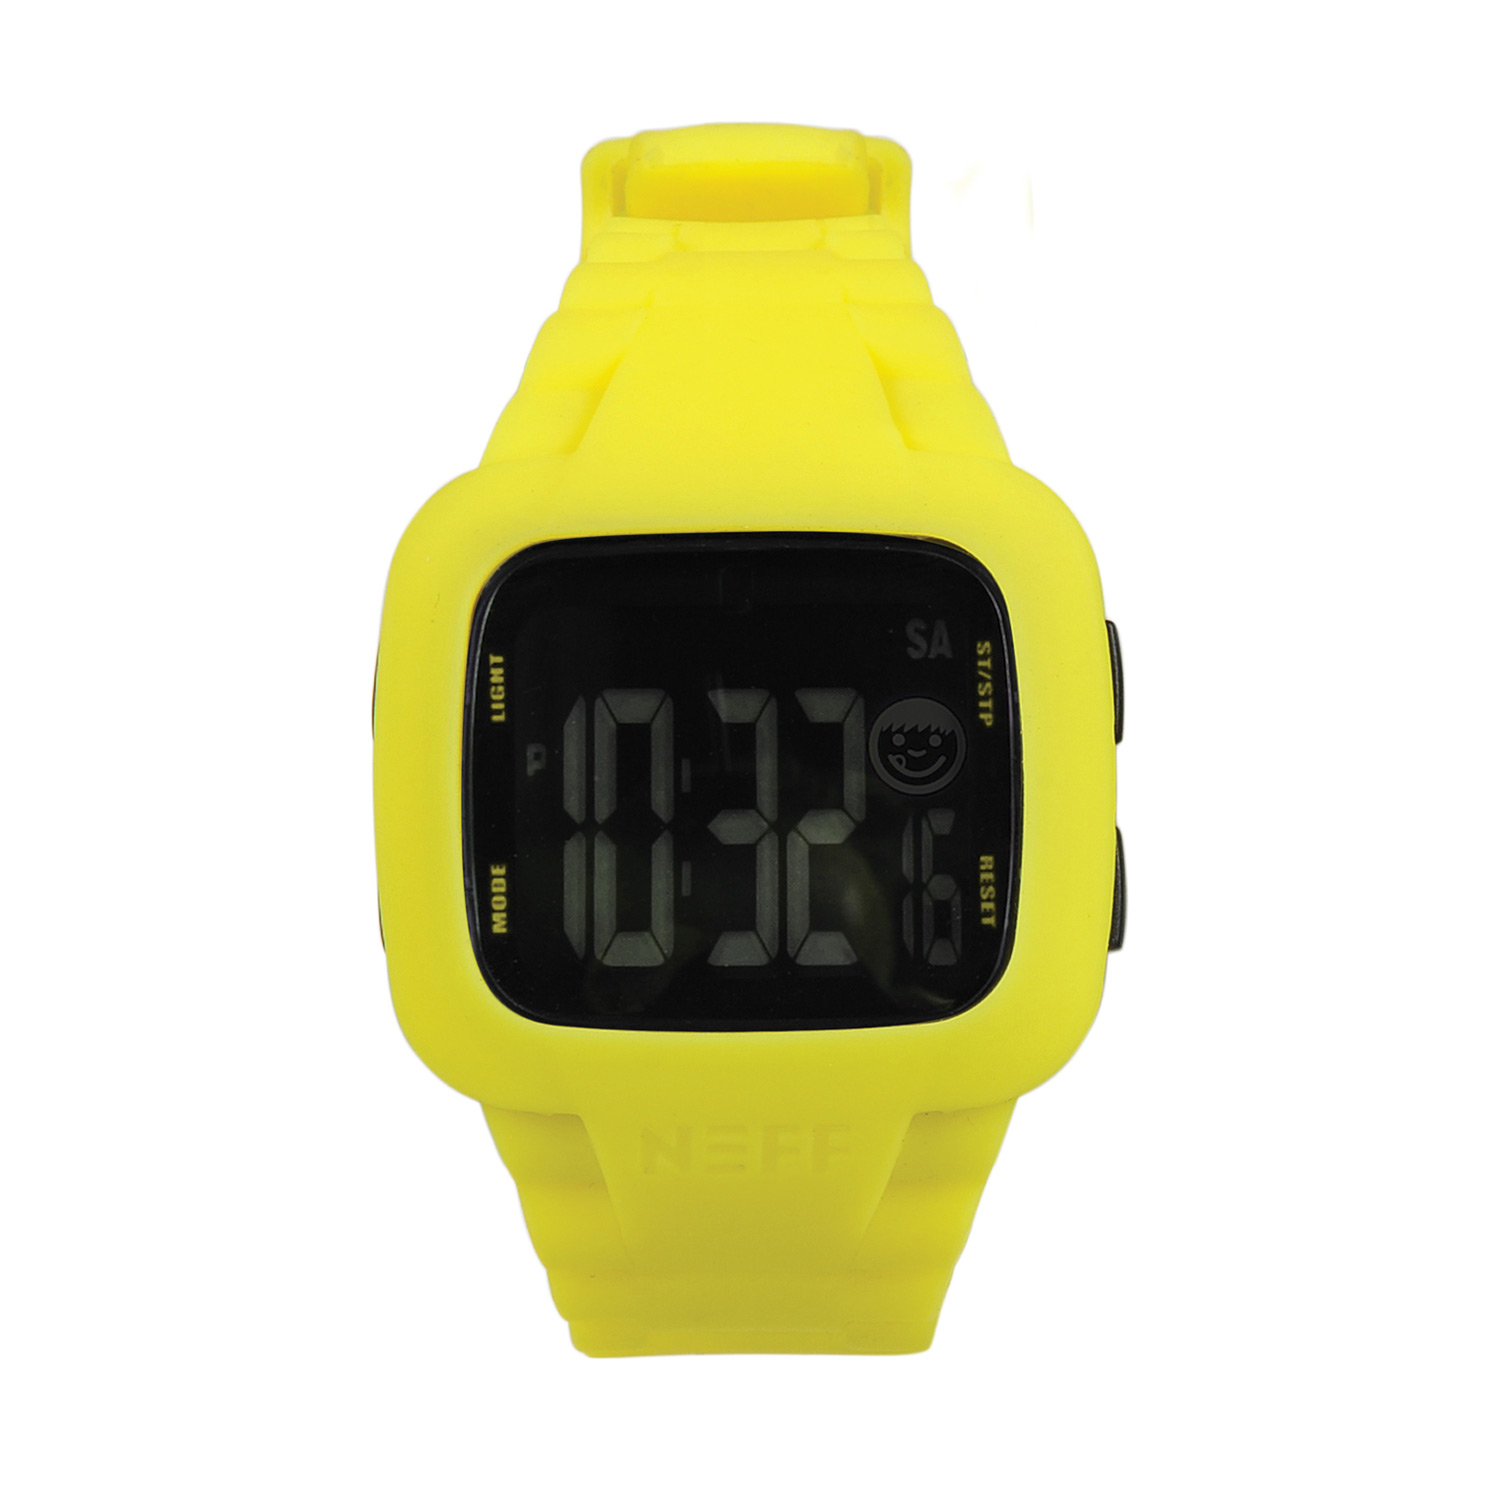 Skateboard Neff Steve Watch Yellow - $29.95